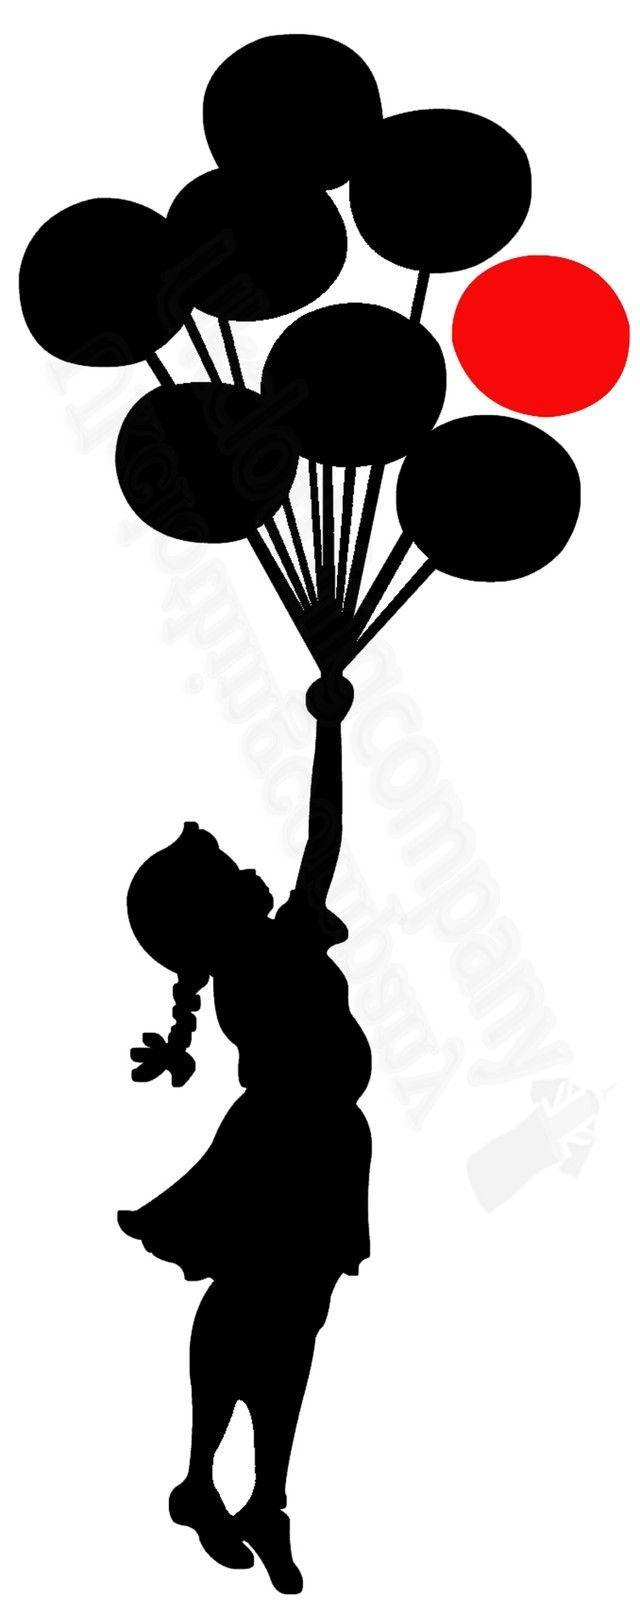 84437f493b5f BANKSY GIRL WITH RED AND BLACK BALLOONS T SHIRT GRAFFITI ART TOPS S TO 5XL  Cool Casual Pride T Shirt Ridiculous Shirts Awesome Tshirt Designs From ...